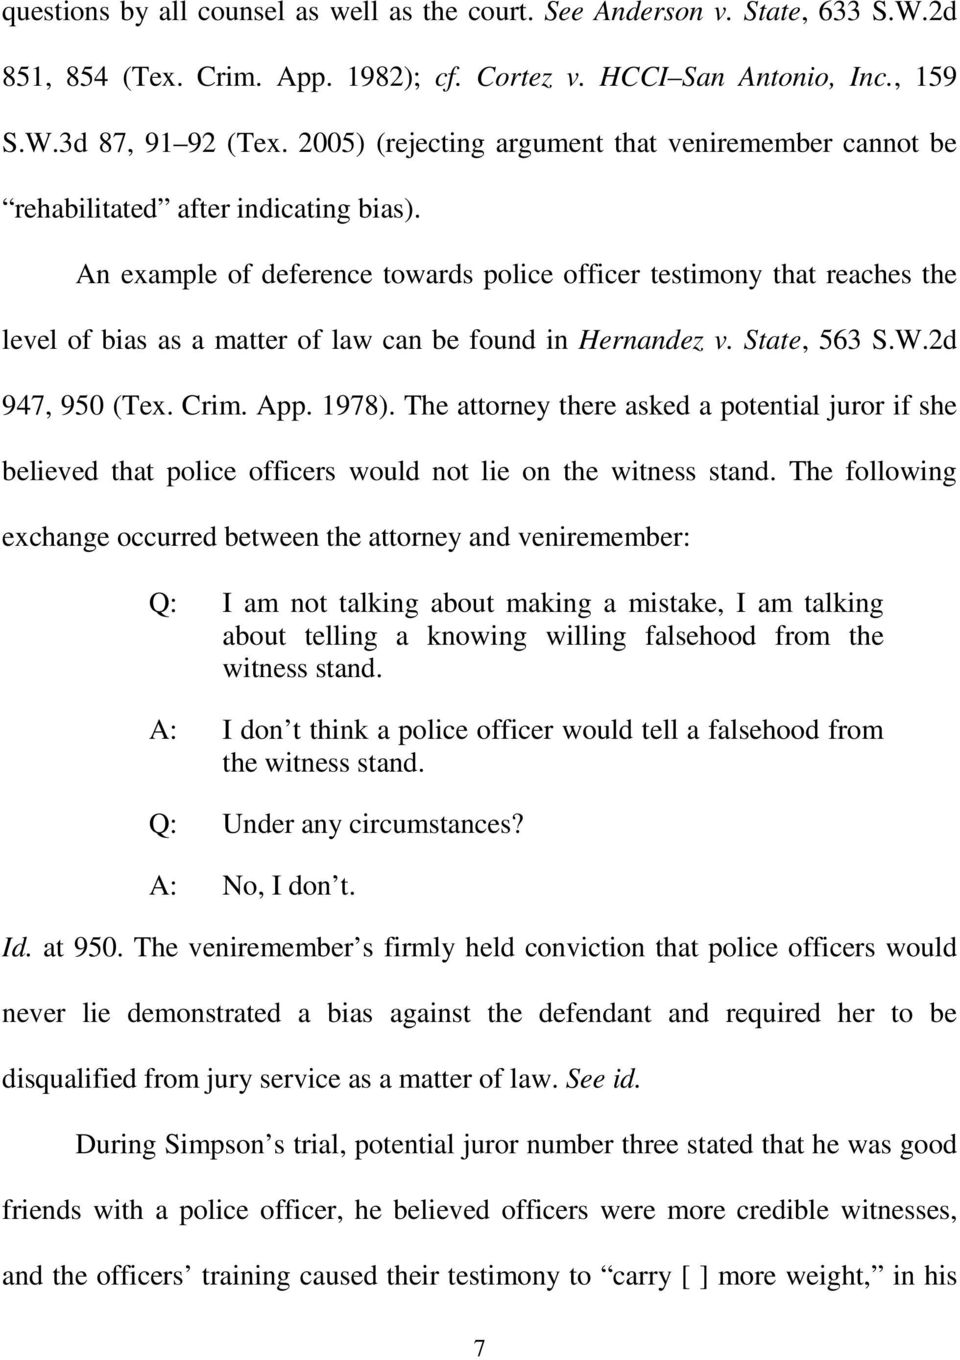 An example of deference towards police officer testimony that reaches the level of bias as a matter of law can be found in Hernandez v. State, 563 S.W.2d 947, 950 (Tex. Crim. App. 1978).